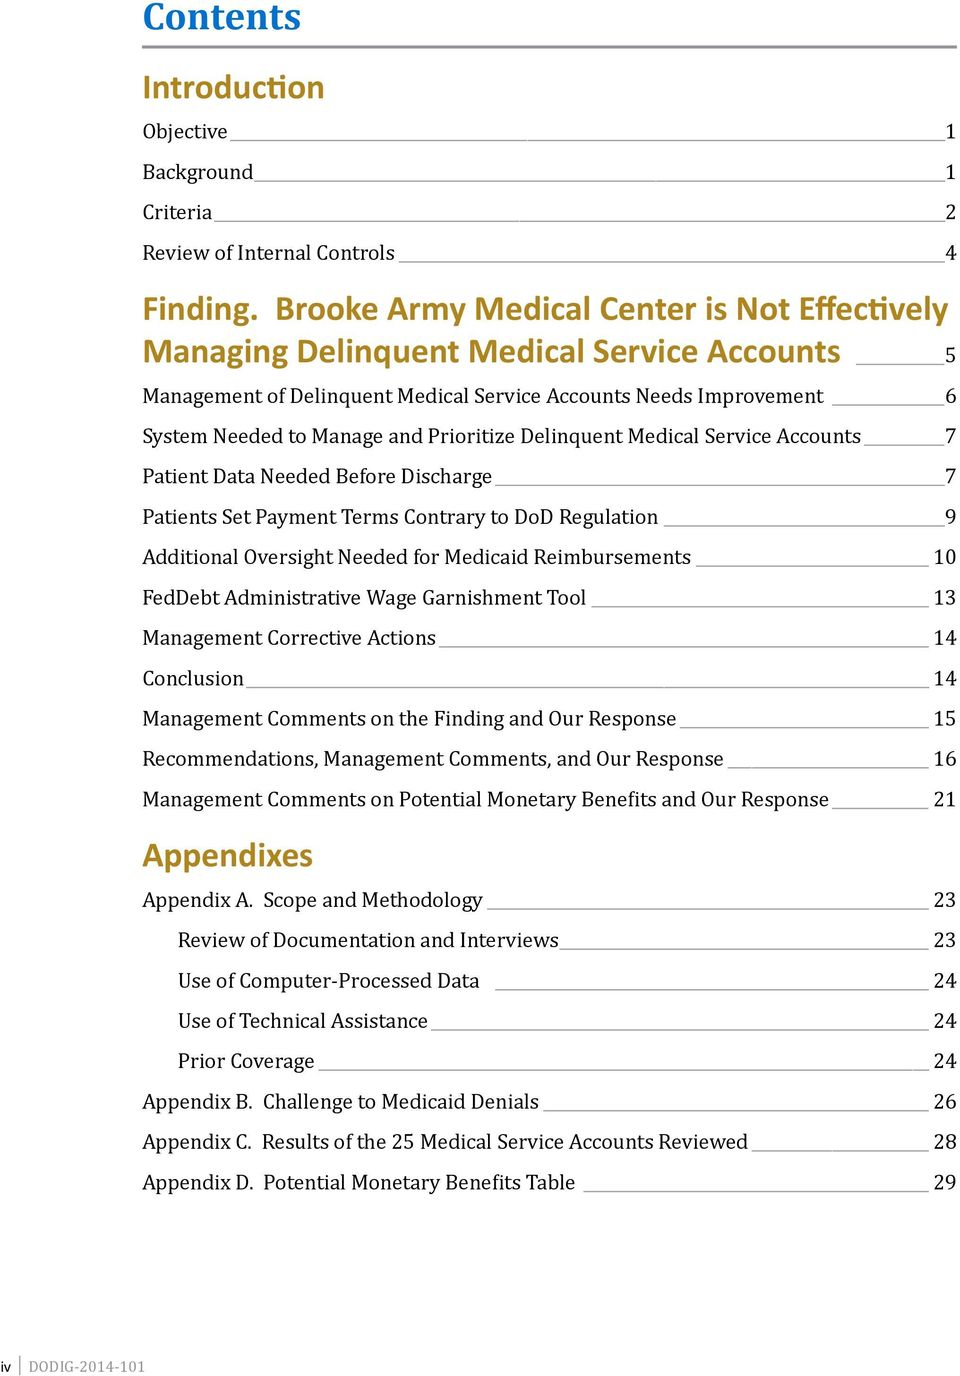 Prioritize Delinquent Medical Service Accounts 7 Patient Data Needed Before Discharge 7 Patients Set Payment Terms Contrary to DoD Regulation 9 Additional Oversight Needed for Medicaid Reimbursements